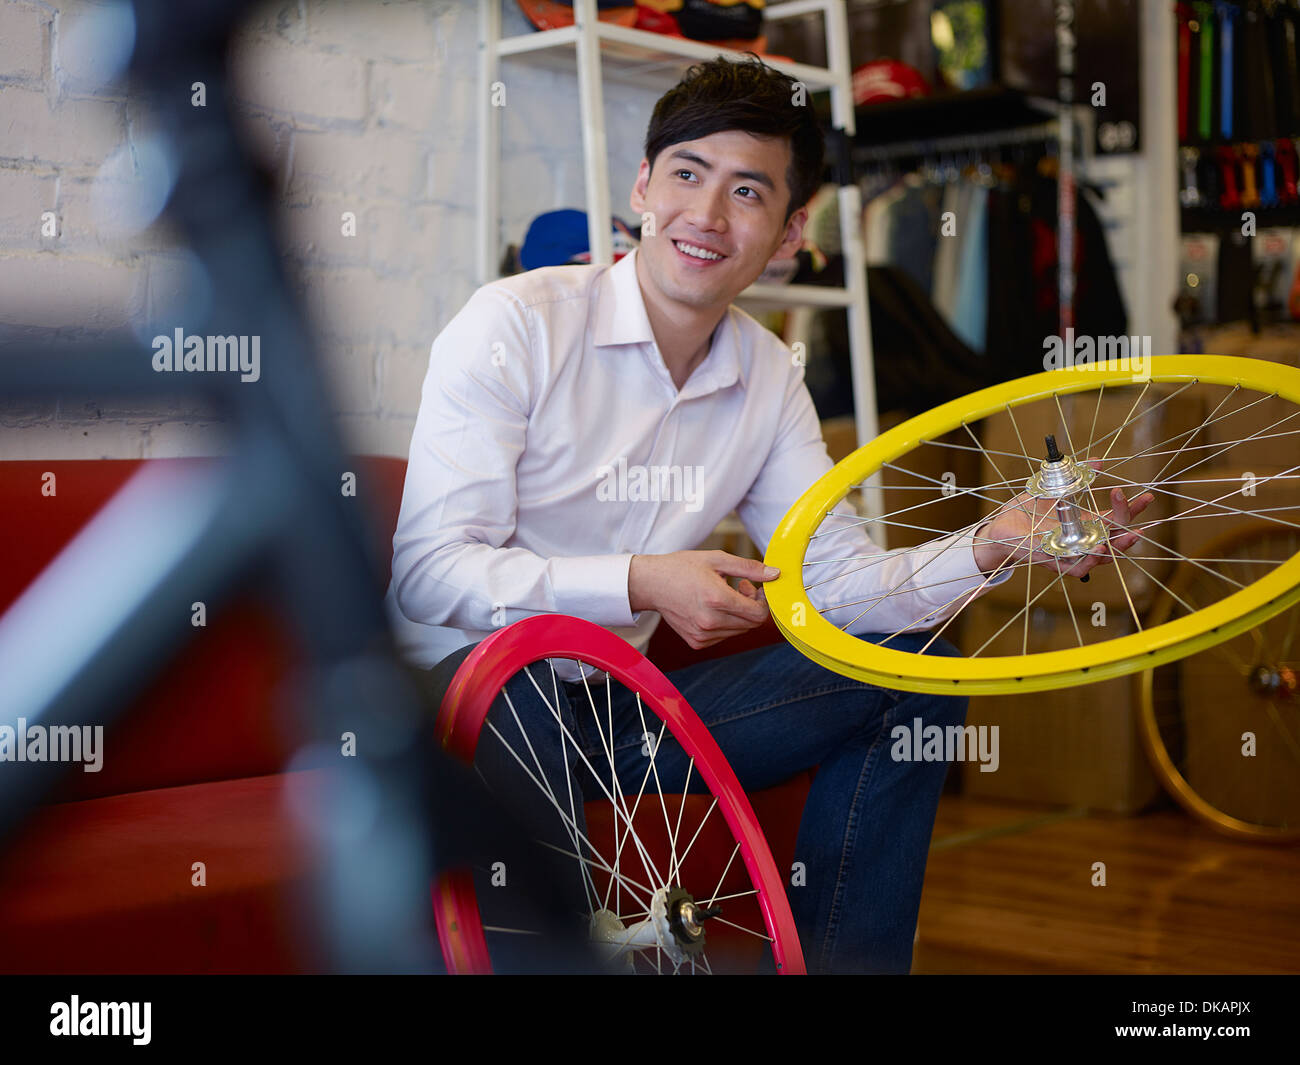 Young man in bike shop holding bicycle wheel - Stock Image